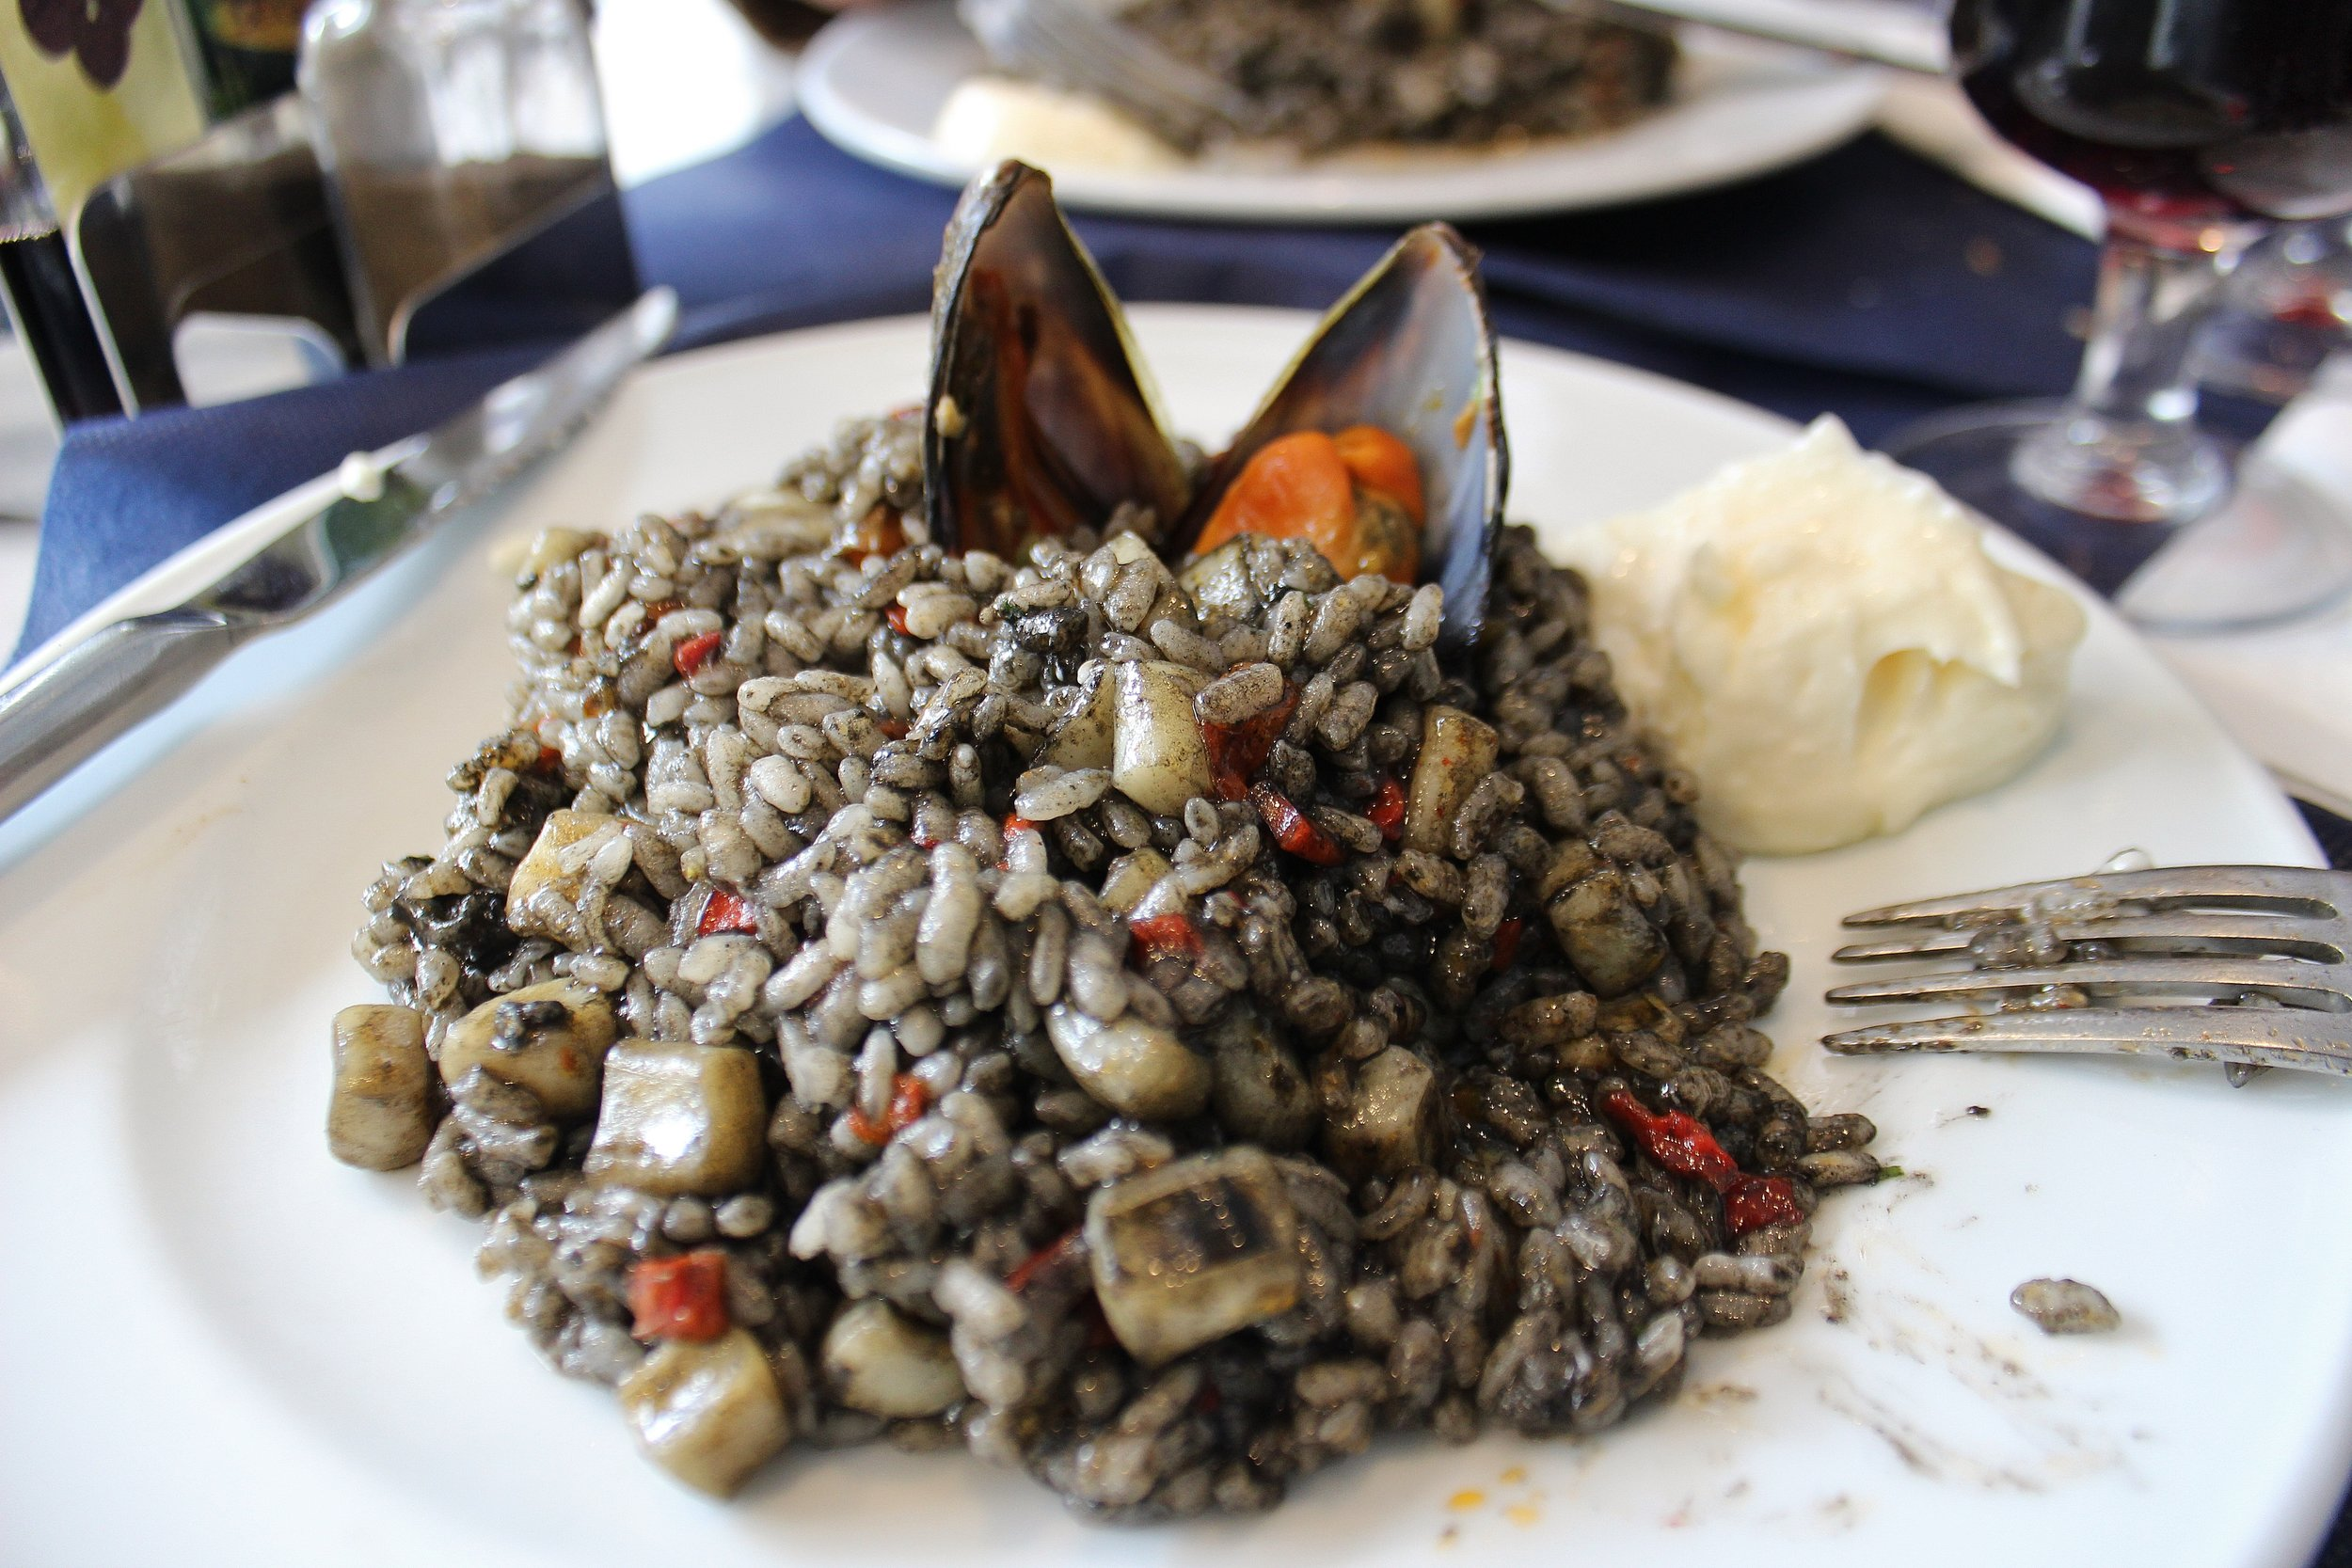 Arroz negro con mariscos. Black rice with seafood (first plate)...